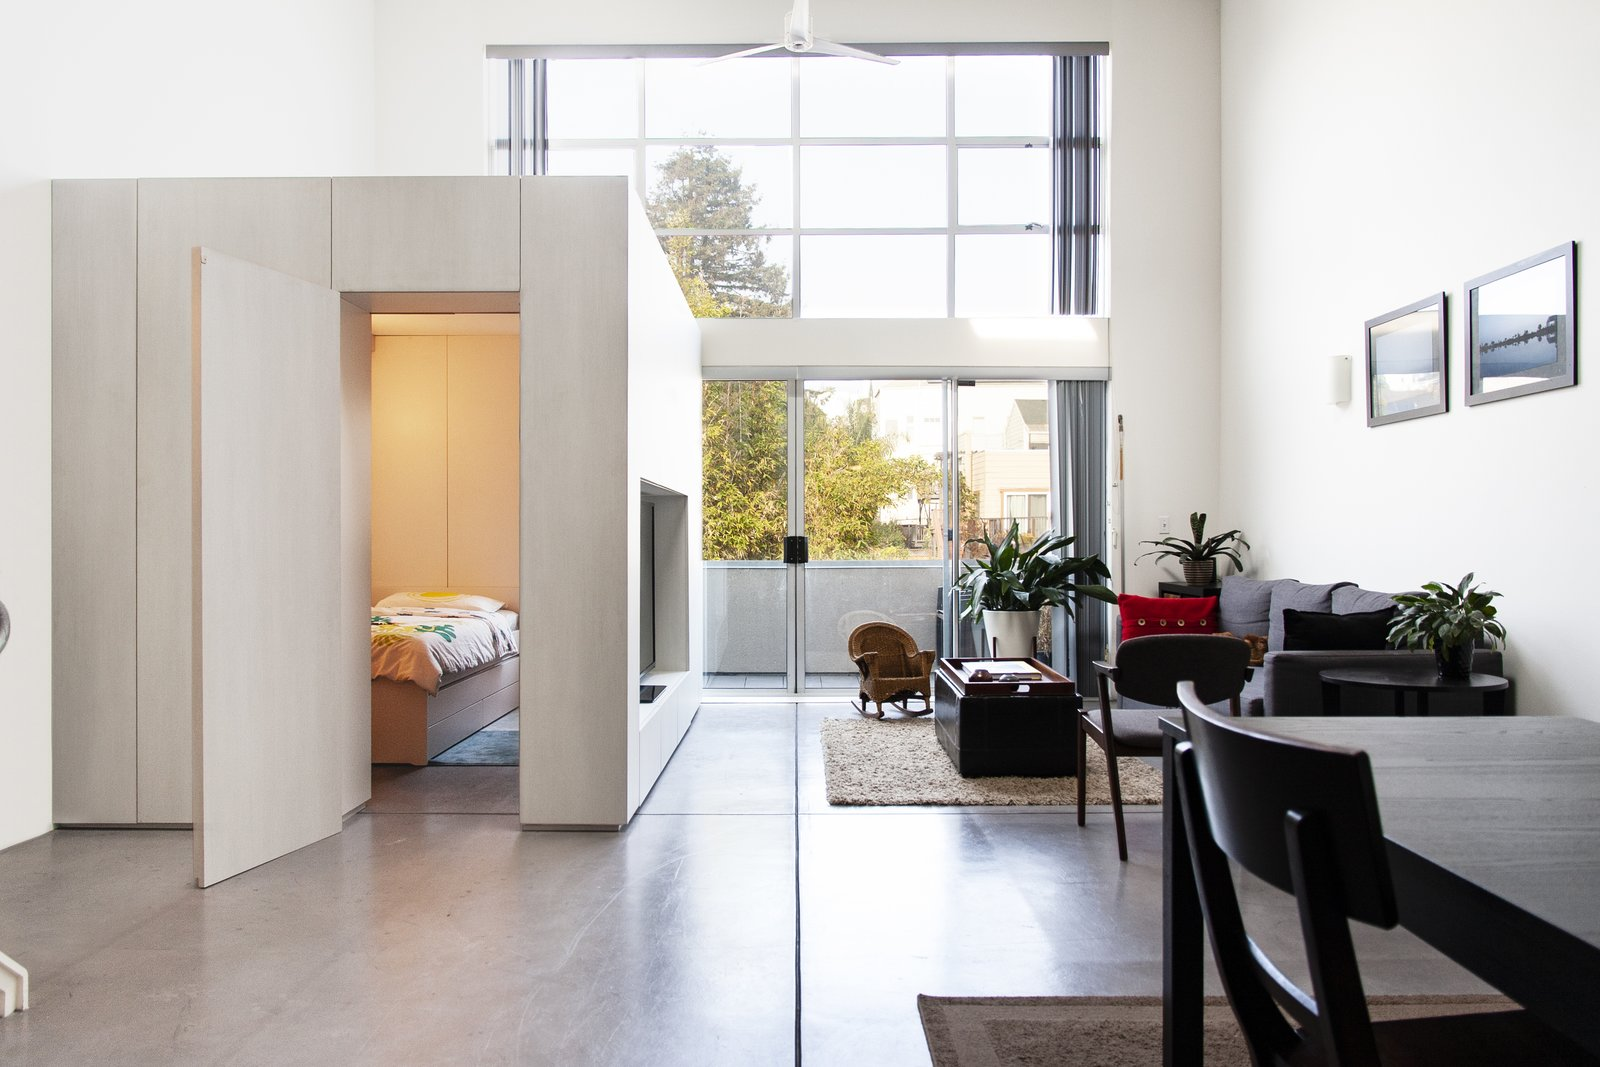 Budget Breakdown: Built For Under $10K, a Cabinet Room Expands a San Francisco Loft